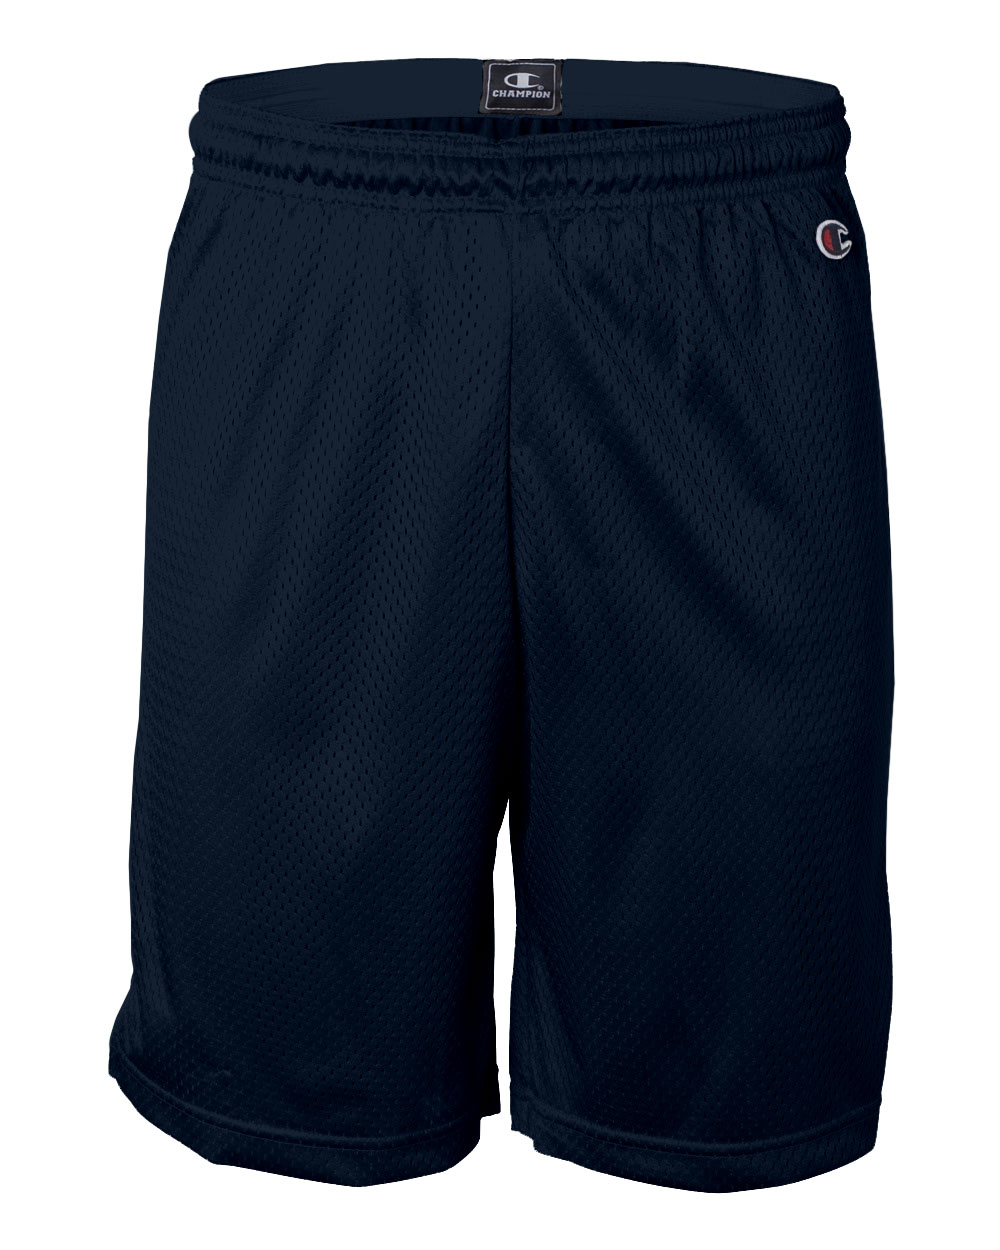 Adult Champion Polyester Mesh Shorts With 9 inseam